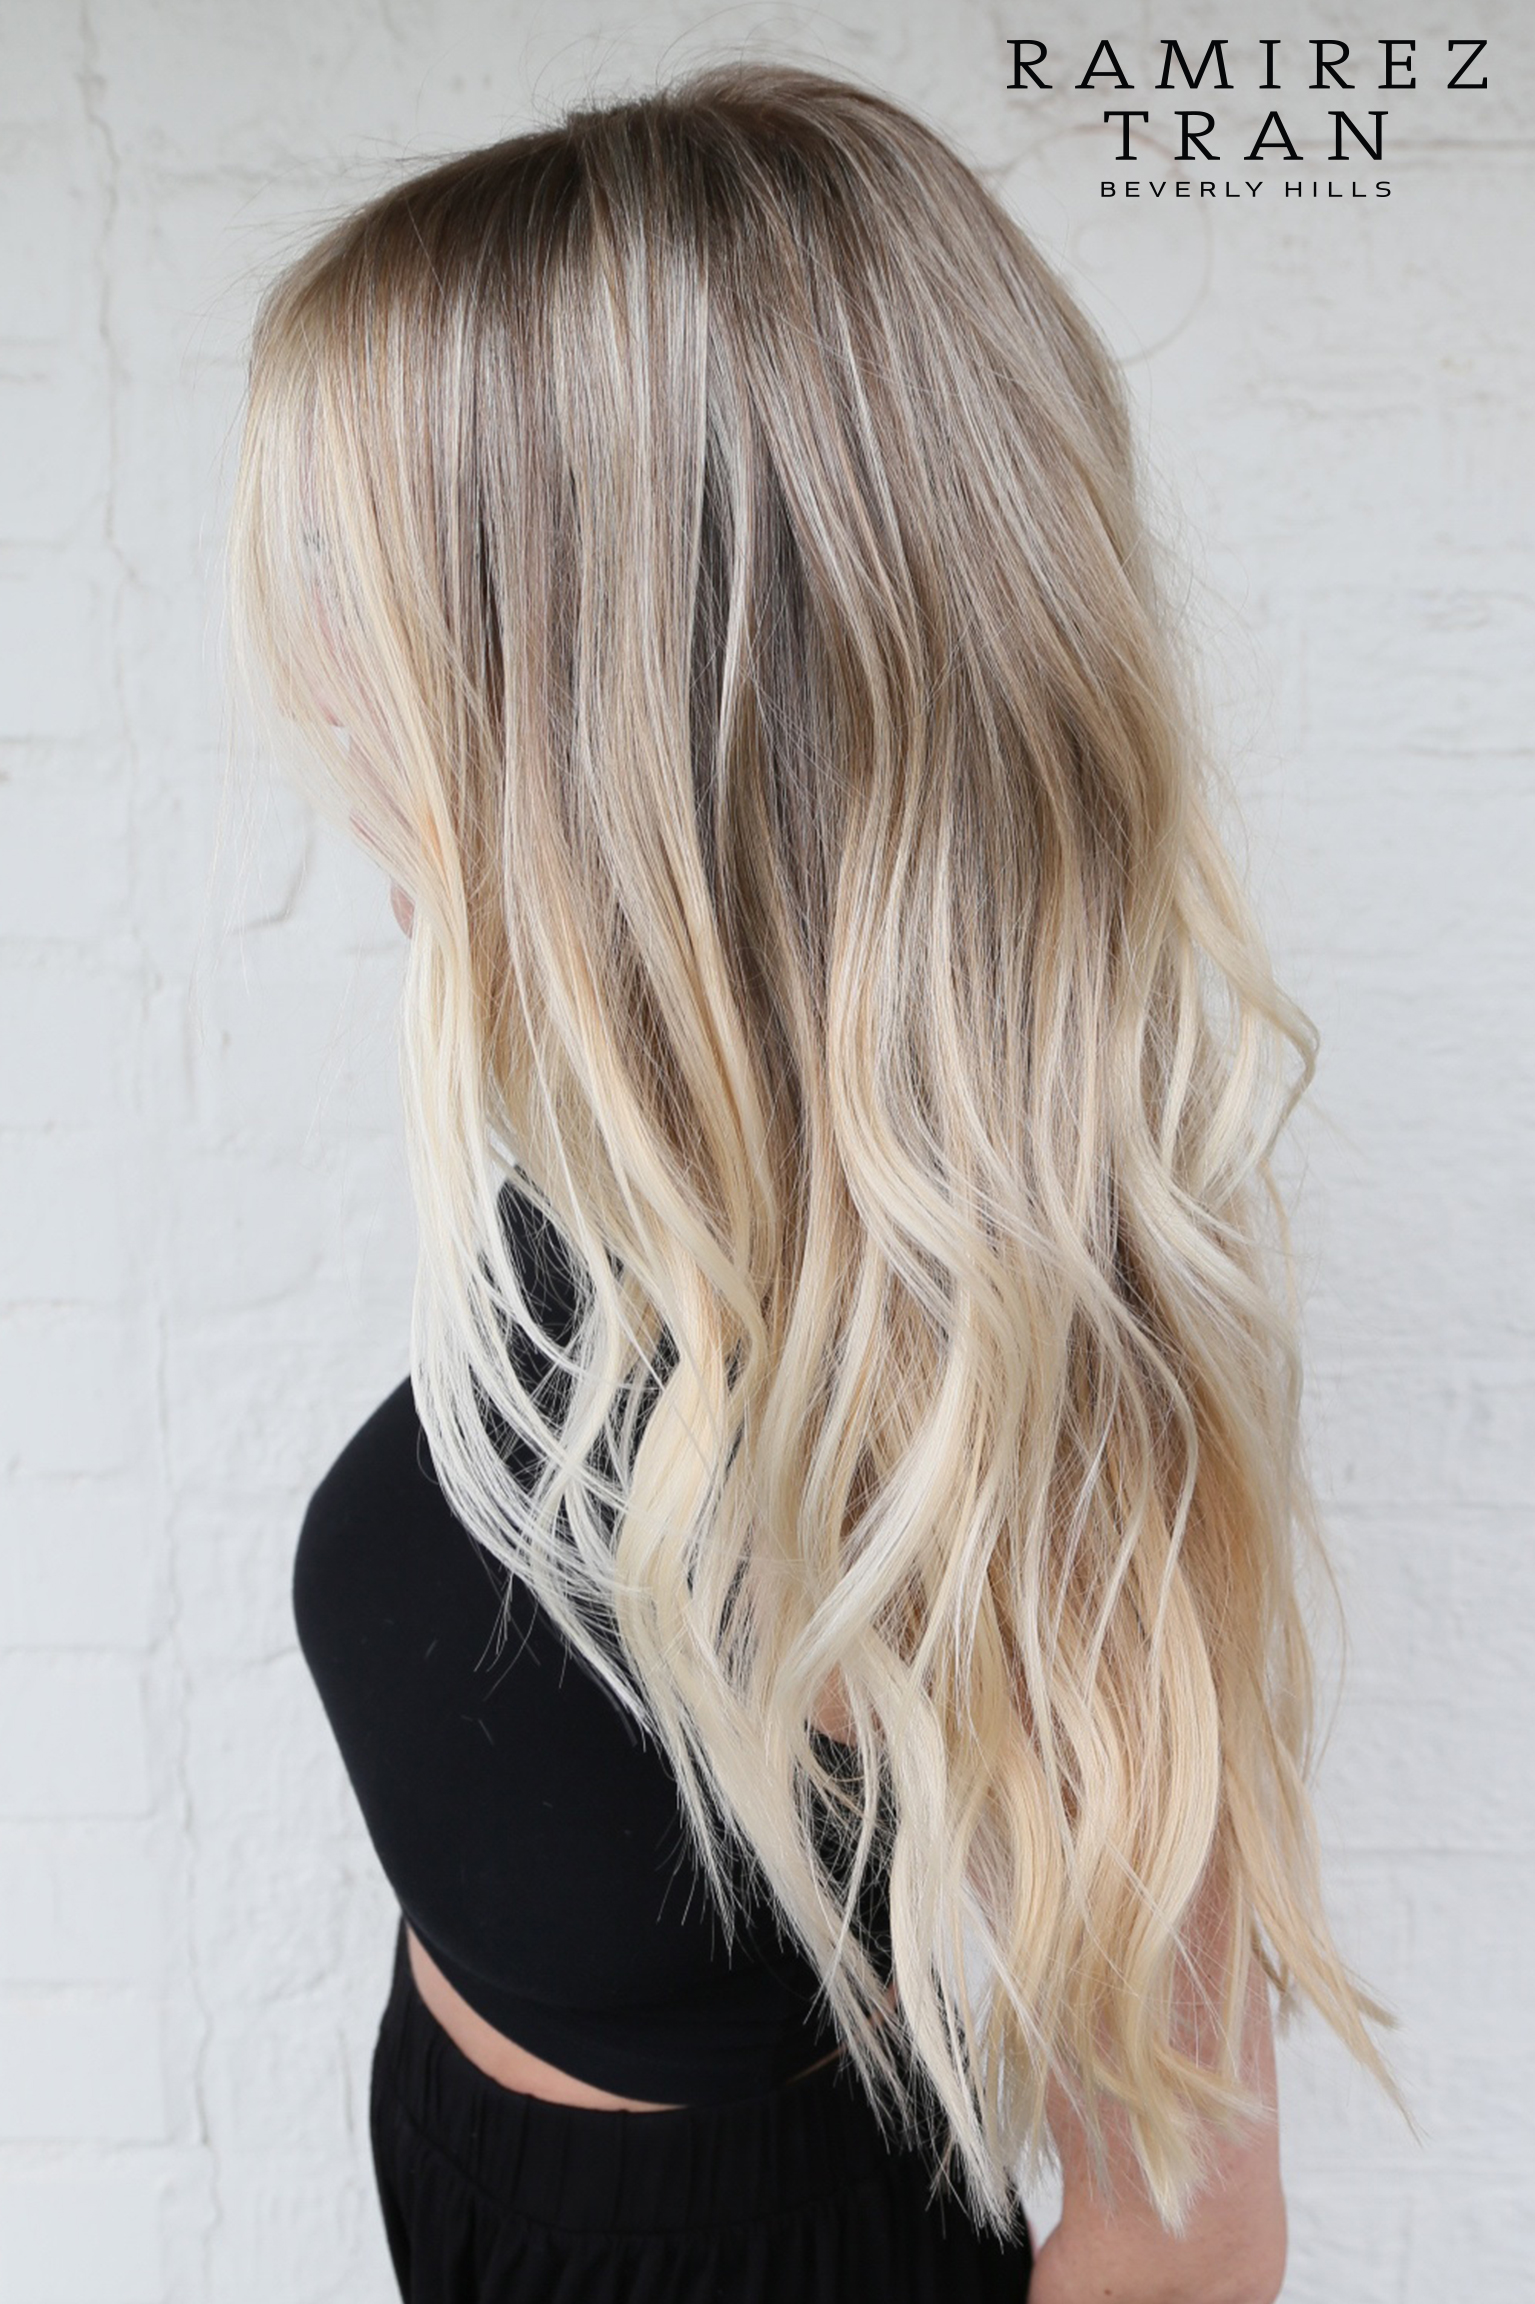 tie and dye blond polaire hair pinterest blond and makeup. Black Bedroom Furniture Sets. Home Design Ideas